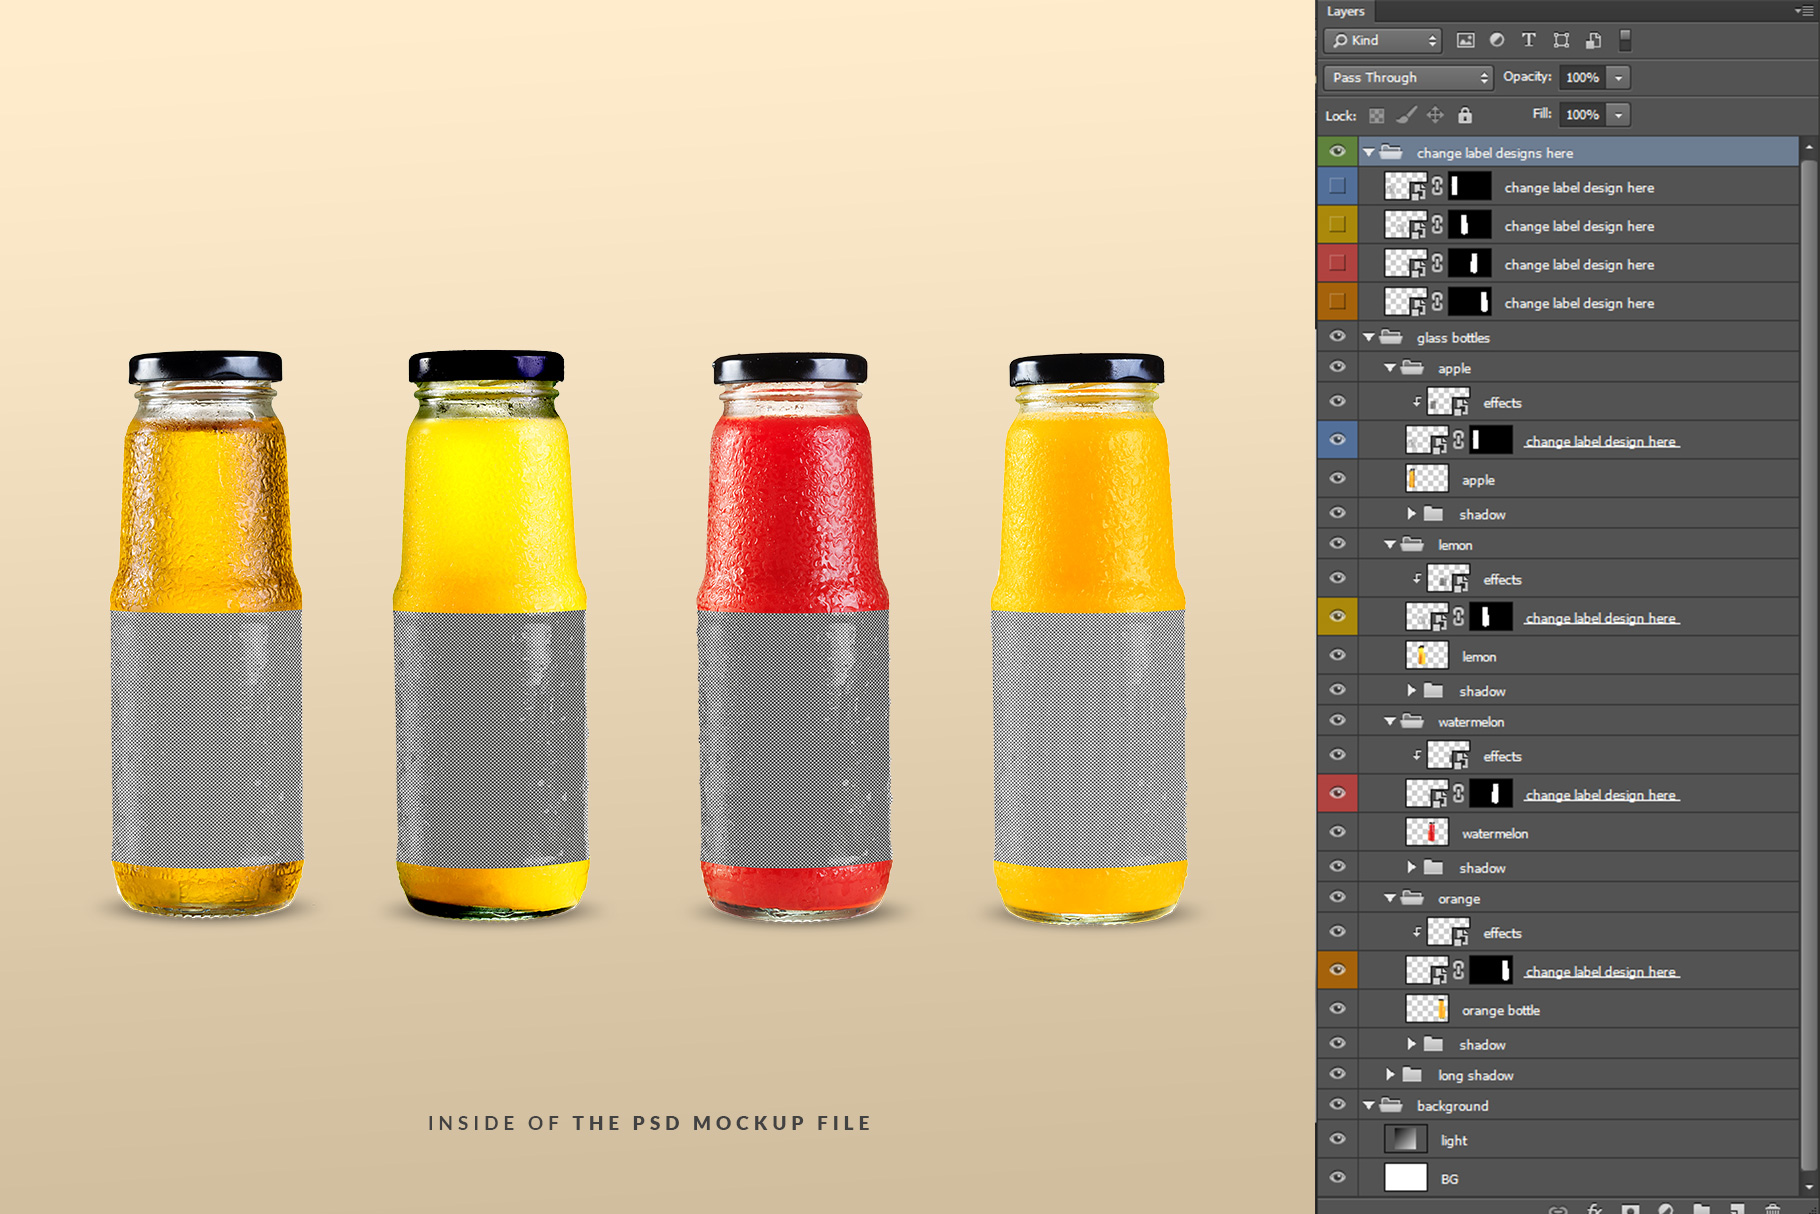 inside of the psd file of the fruit juice glass container mockup